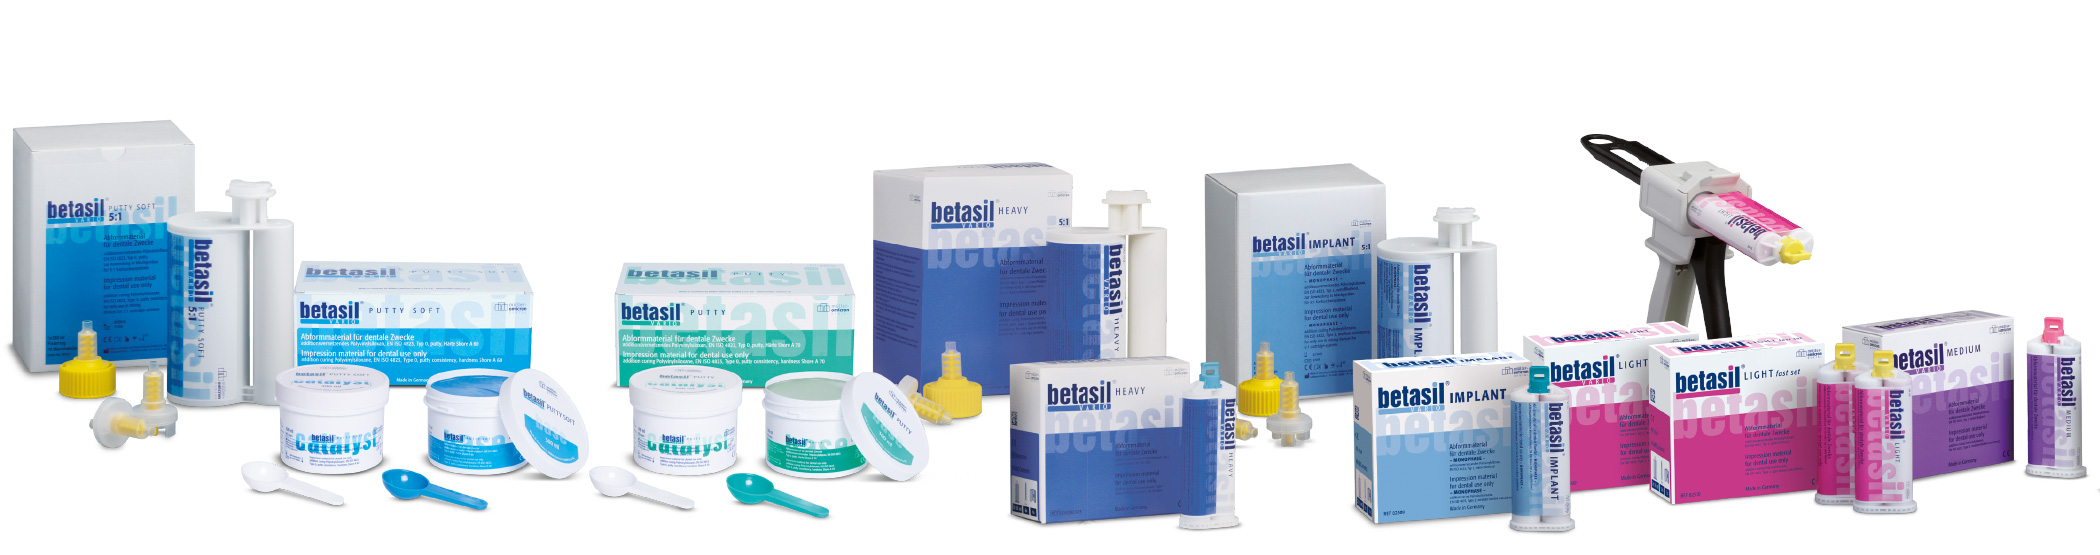 betasil products